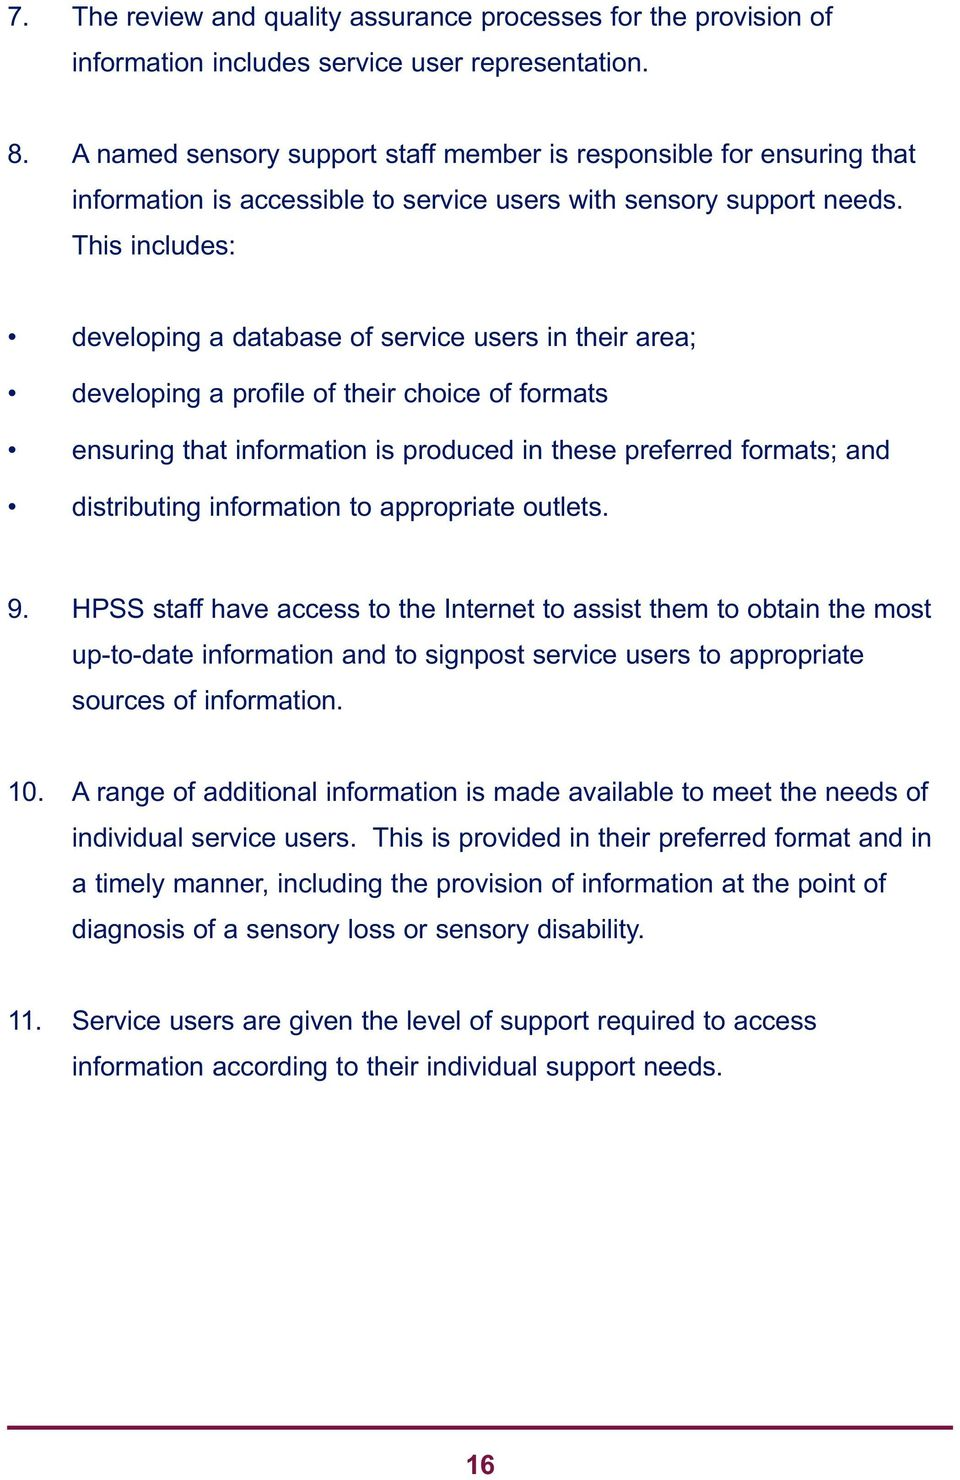 This includes: developing a database of service users in their area; developing a profile of their choice of formats ensuring that information is produced in these preferred formats; and distributing